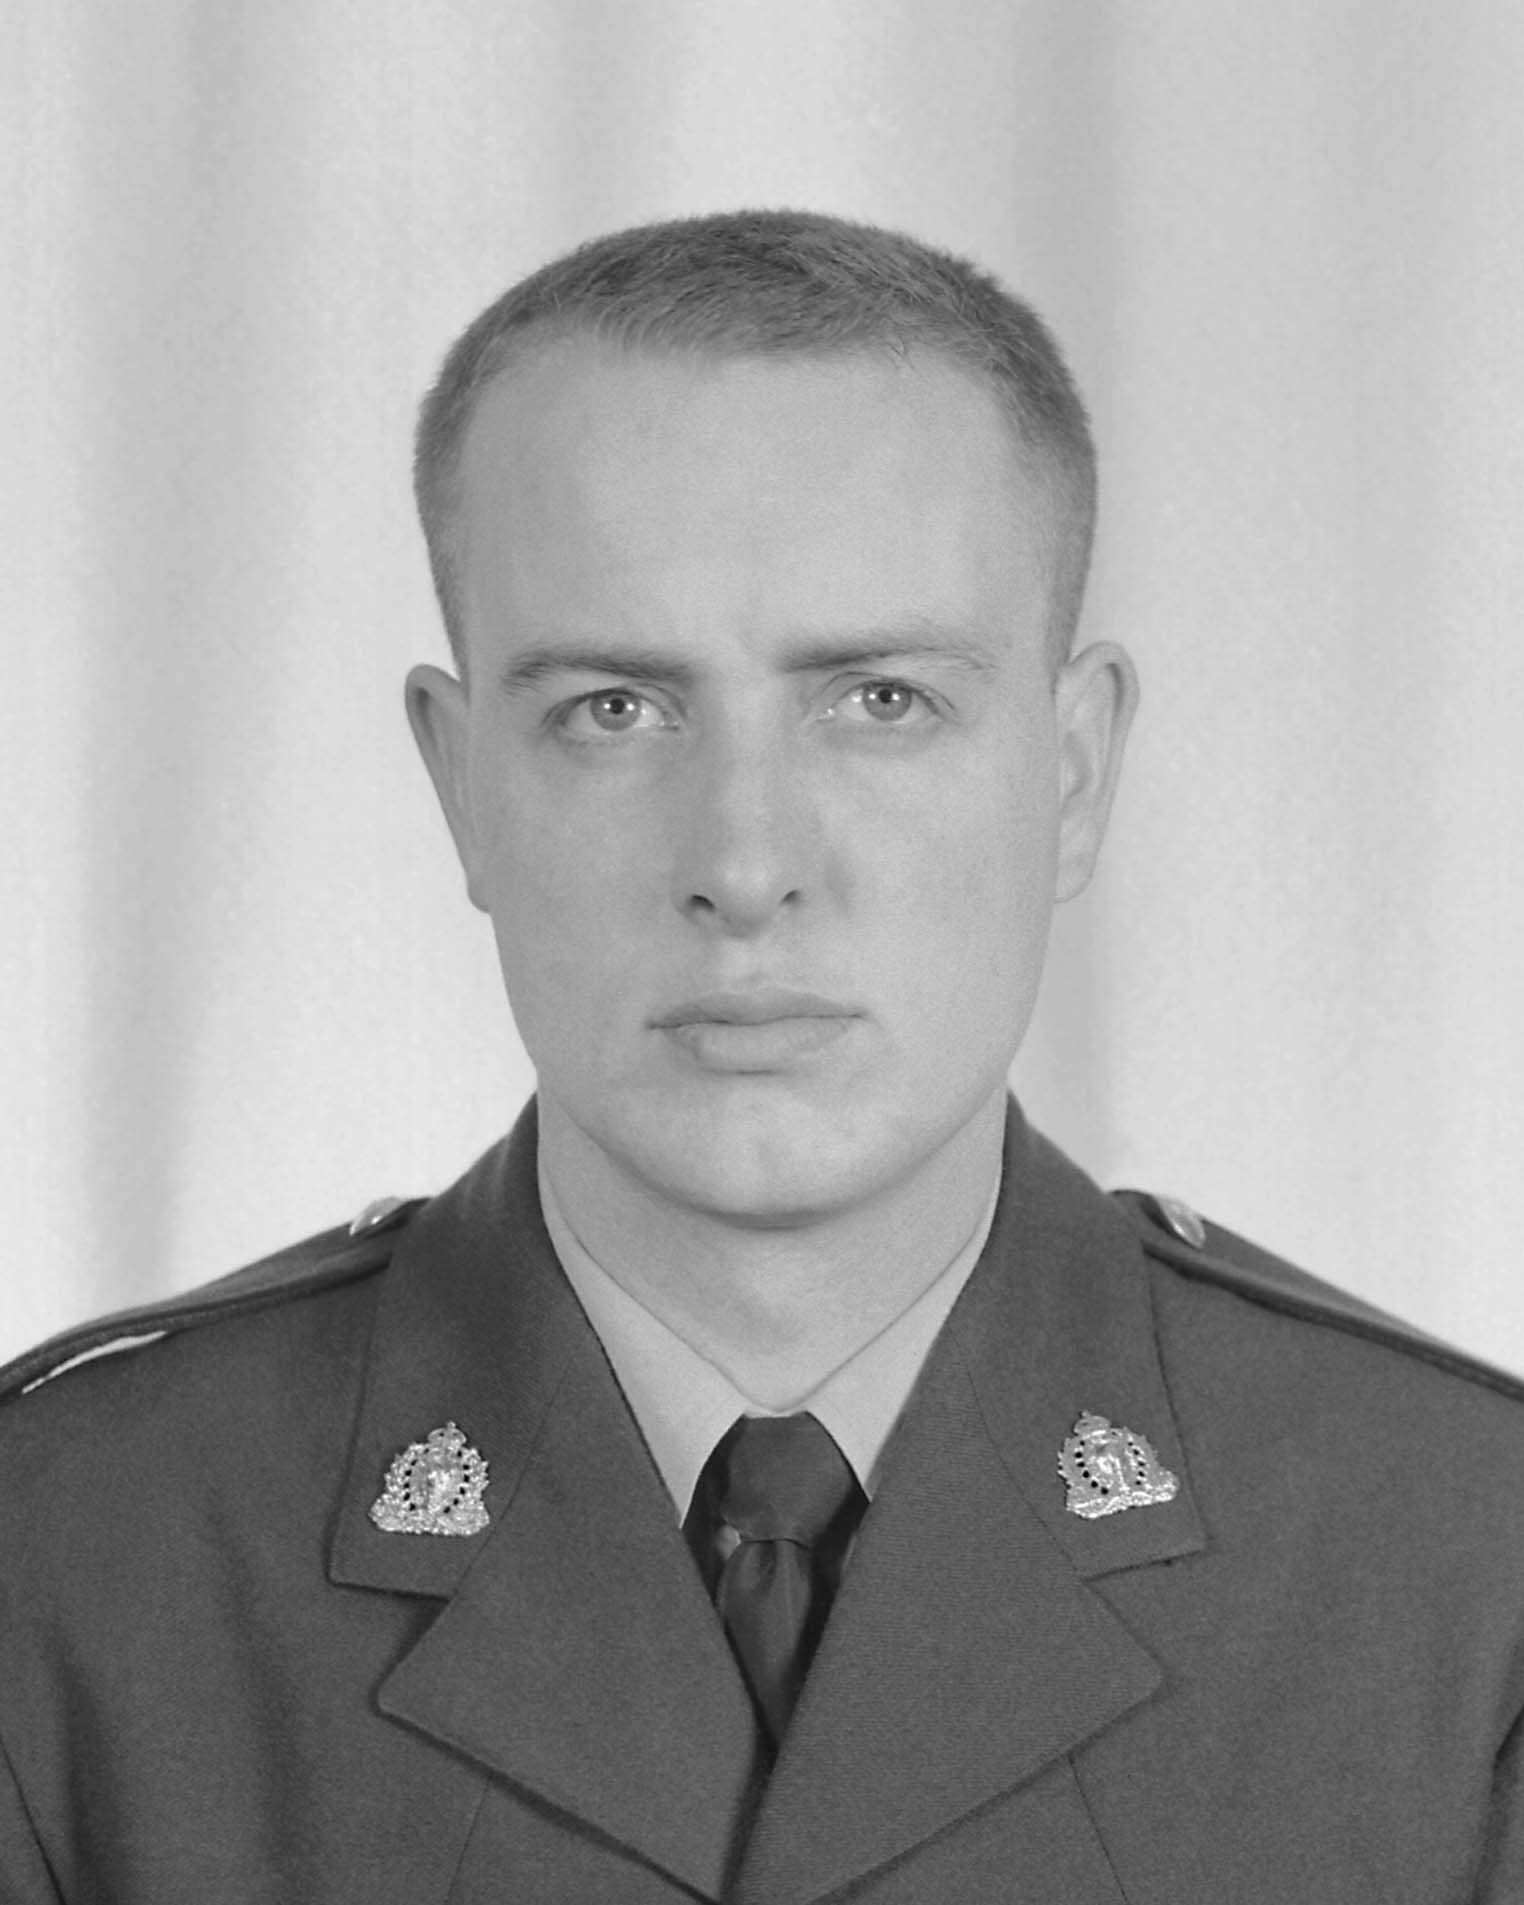 Second Class Constable Glen Frederick Farough – © Her Majesty the Queen in Right of Canada as represented by the Royal Canadian Mounted Police